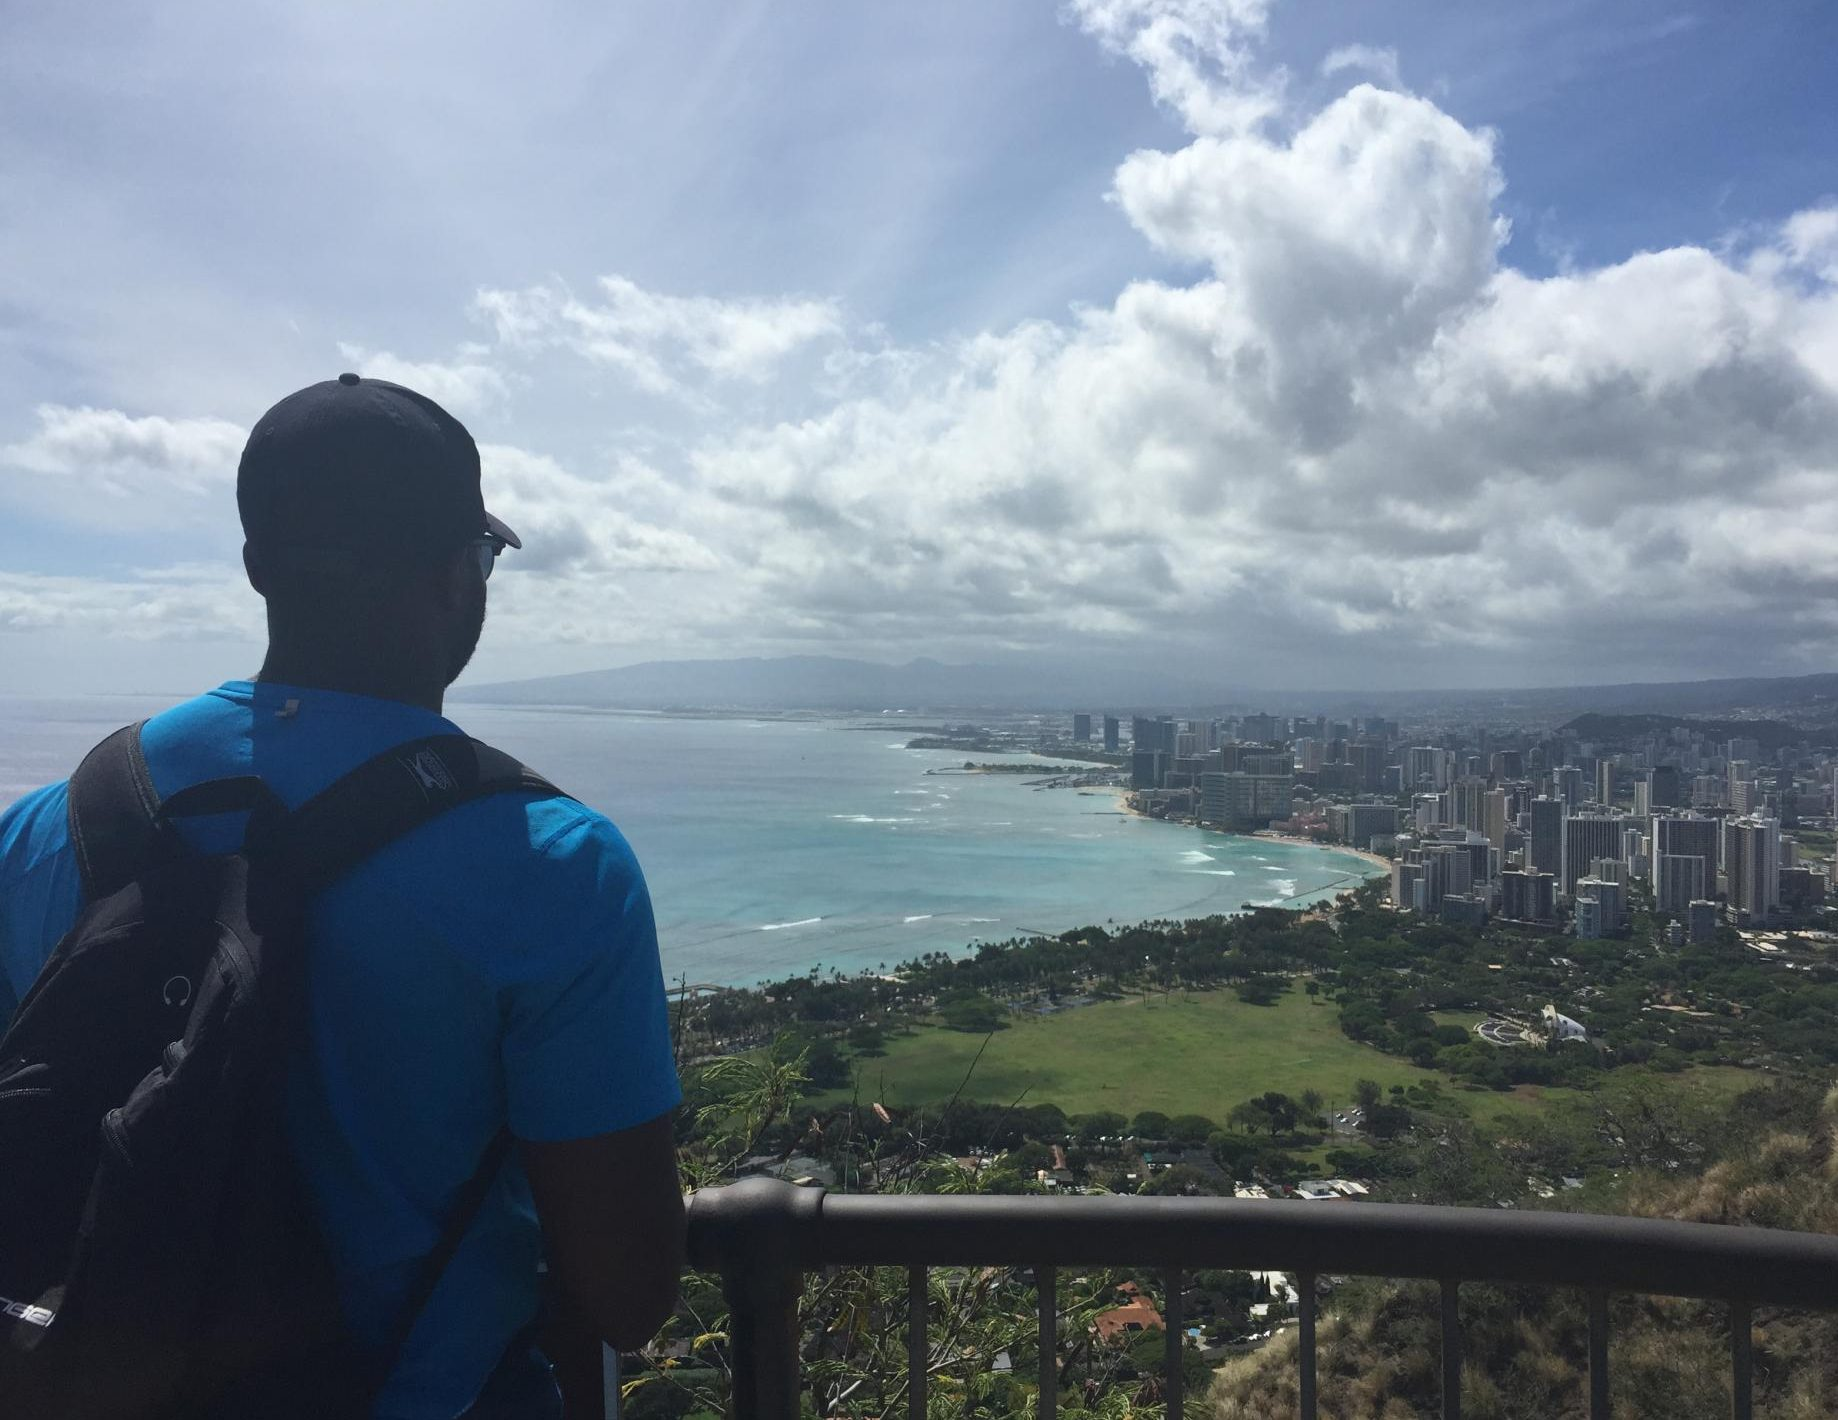 Looking out over O'ahu